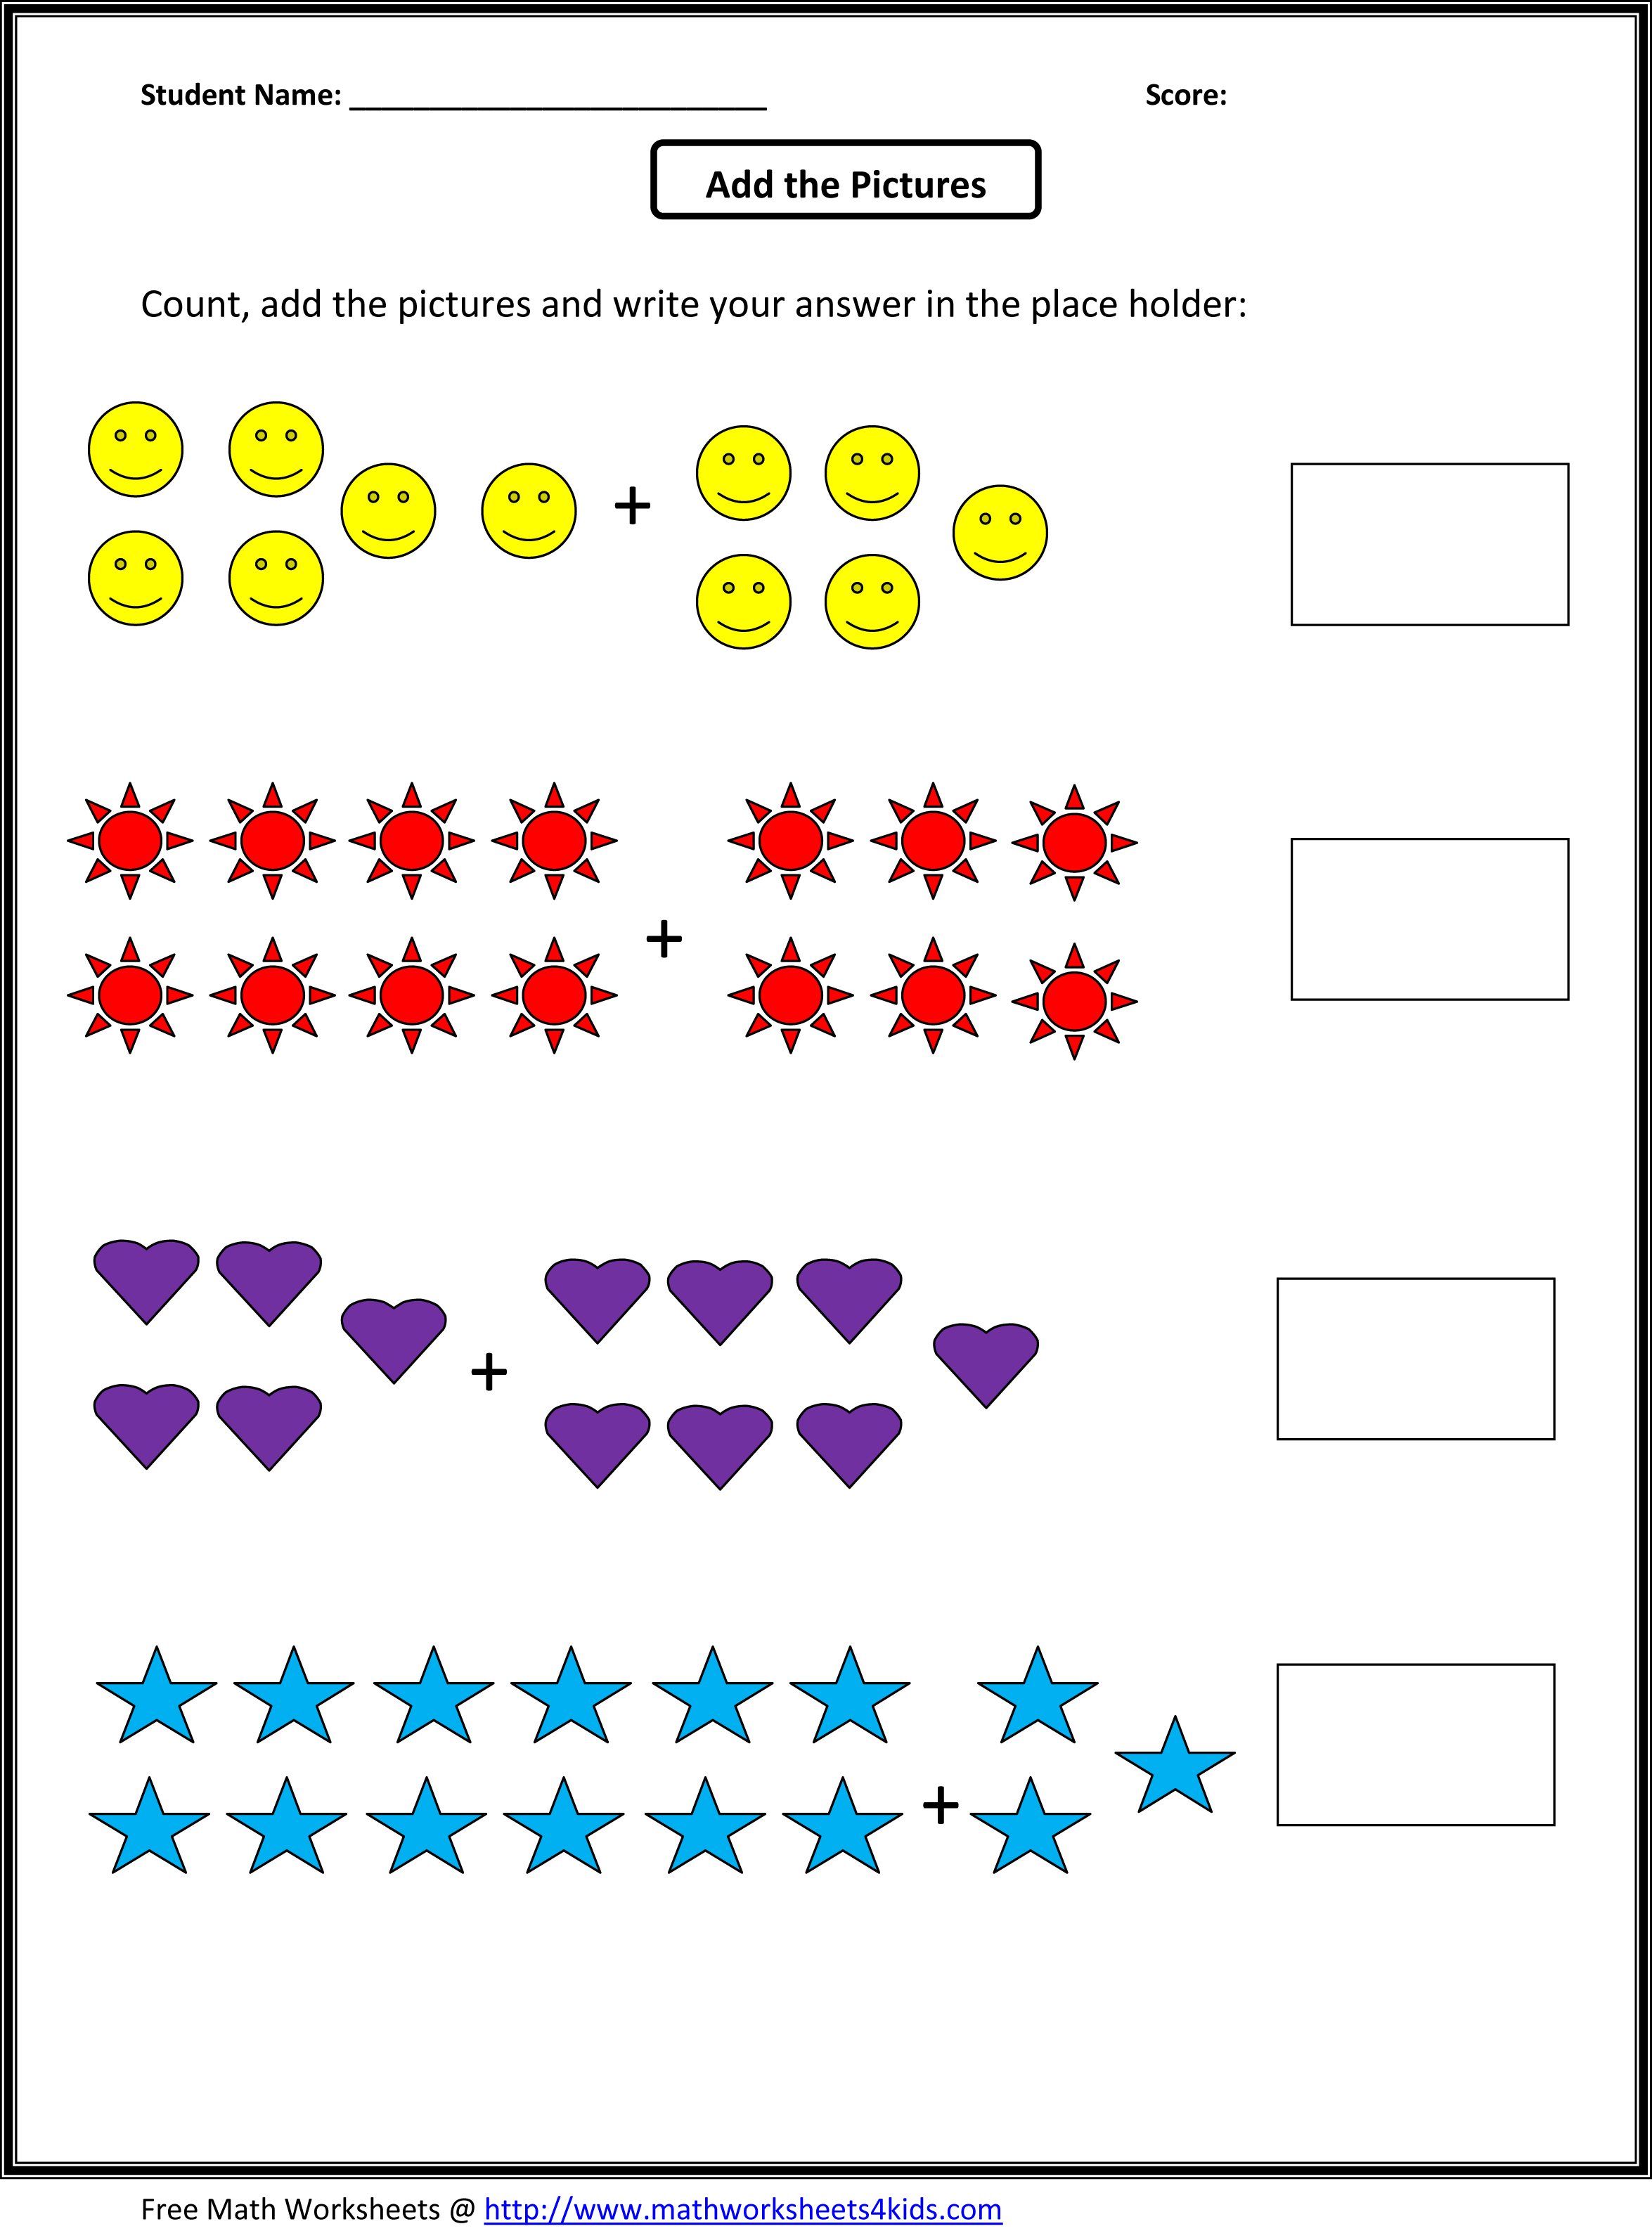 Weirdmailus  Fascinating Grade  Maths Worksheet  Reocurent With Glamorous Math Worksheets For St Grade Free  Reocurent With Astounding Acid Base Worksheet High School Also Mlk Worksheets Free In Addition Nine Times Table Worksheet And Reading Comprehension Th Grade Worksheets As Well As Compound Words Worksheets Rd Grade Additionally Multiplication Chart Worksheets From Reocurentcom With Weirdmailus  Glamorous Grade  Maths Worksheet  Reocurent With Astounding Math Worksheets For St Grade Free  Reocurent And Fascinating Acid Base Worksheet High School Also Mlk Worksheets Free In Addition Nine Times Table Worksheet From Reocurentcom